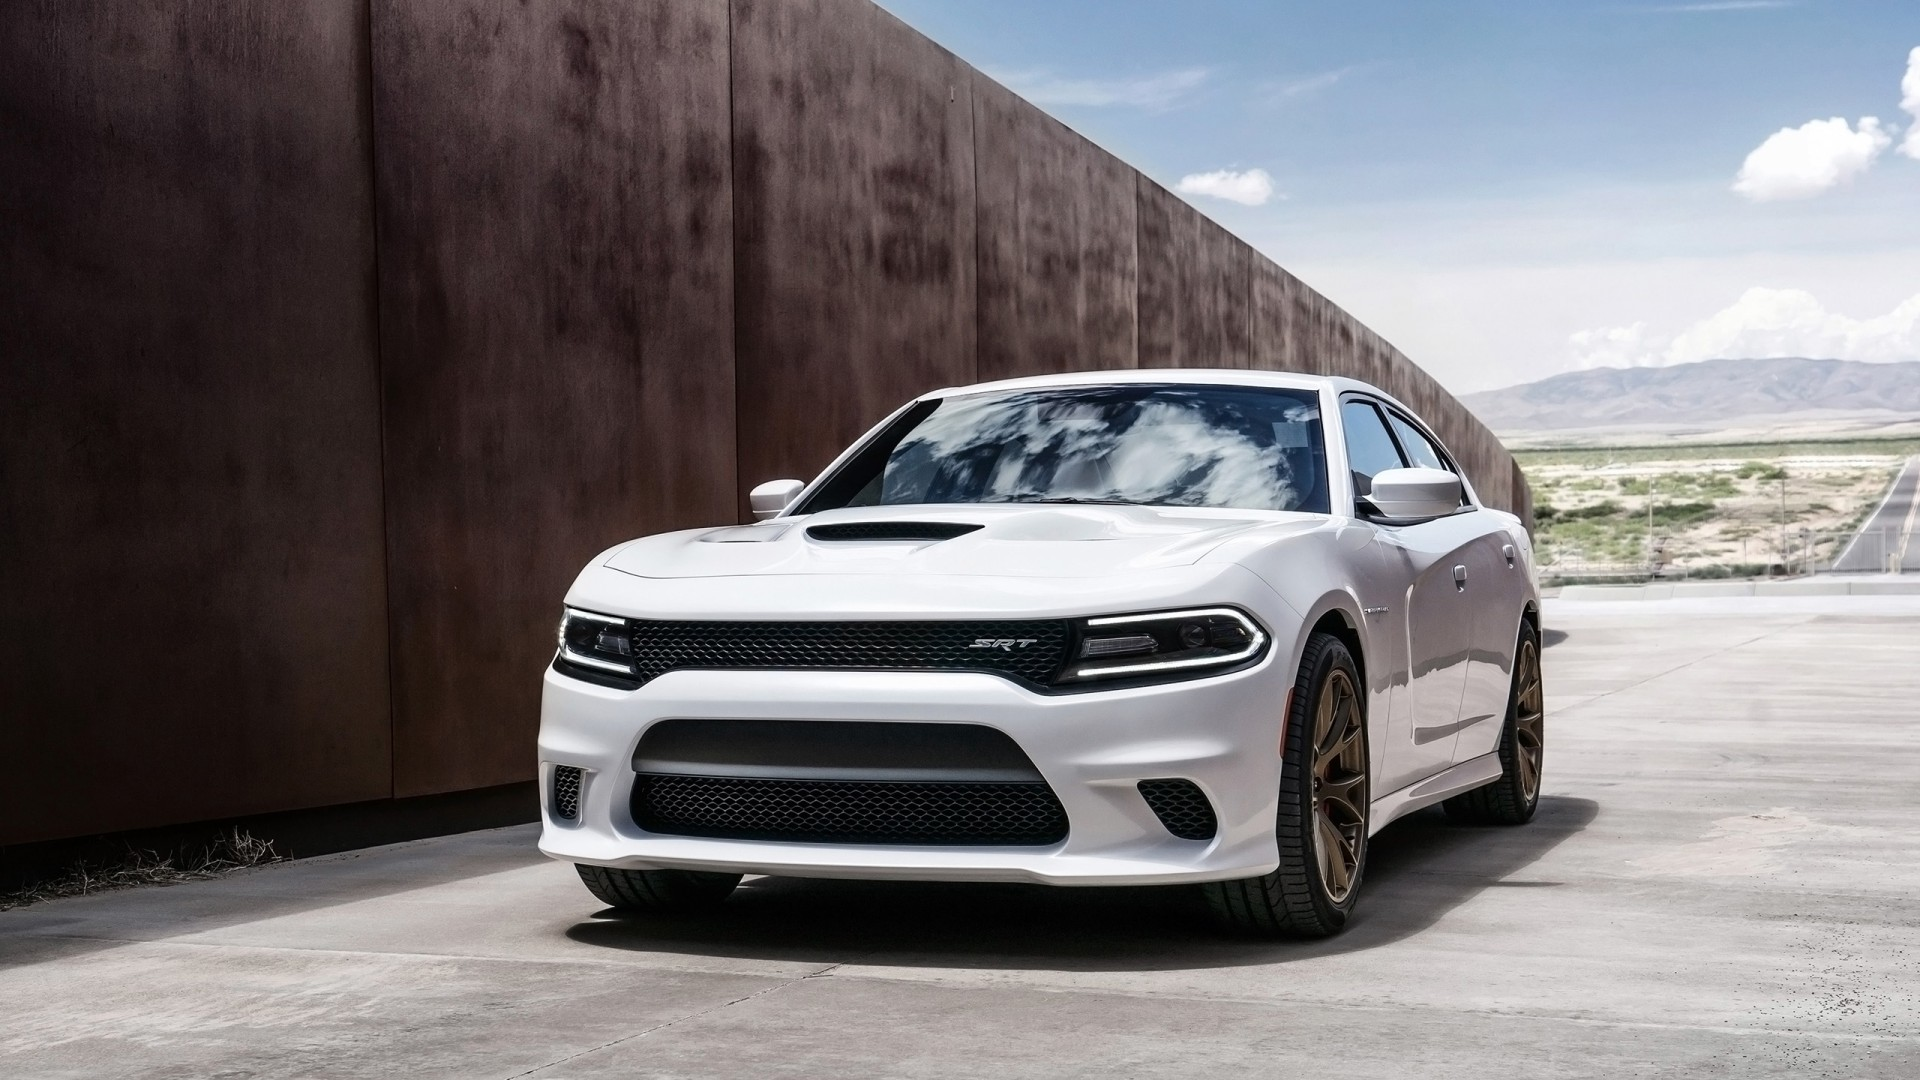 2015 Dodge Charger Srt Hellcat 3 Wallpaper Hd Car